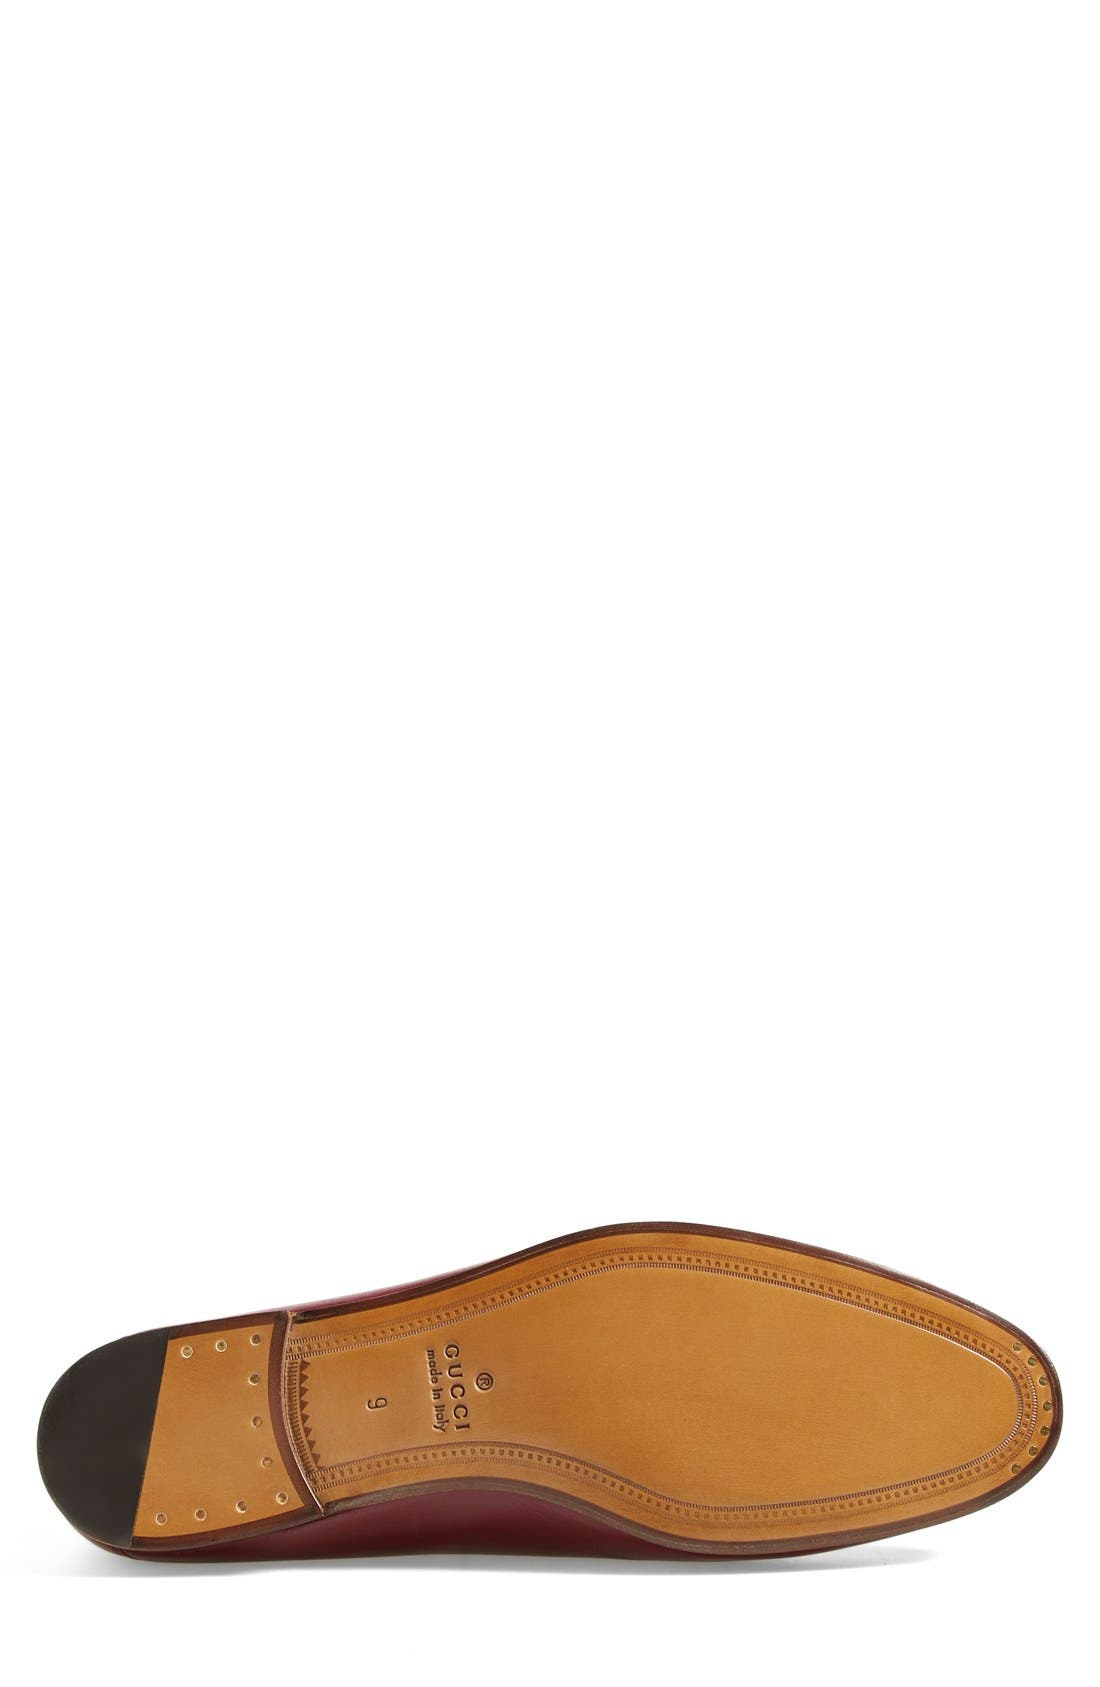 Brixton Leather Loafer,                             Alternate thumbnail 18, color,